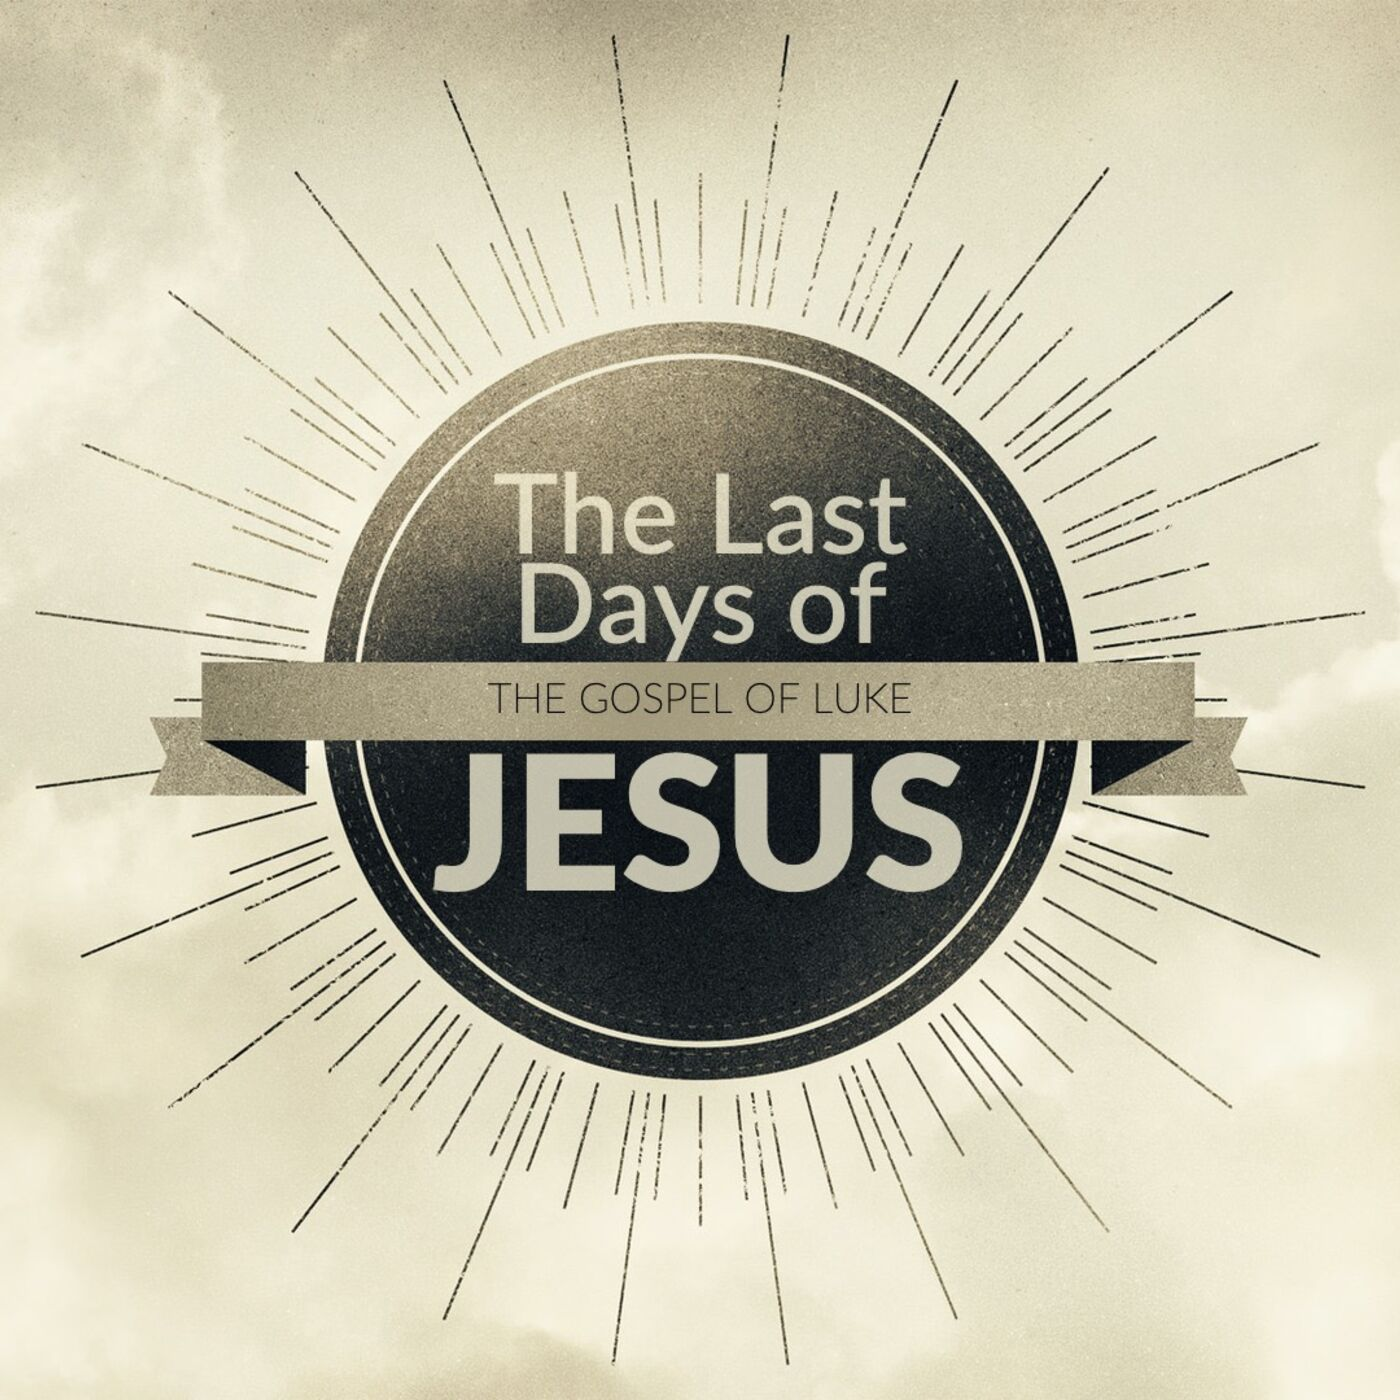 The Last Days of Jesus: The Coming of the Kingdom of God (Luke 17:20-36)